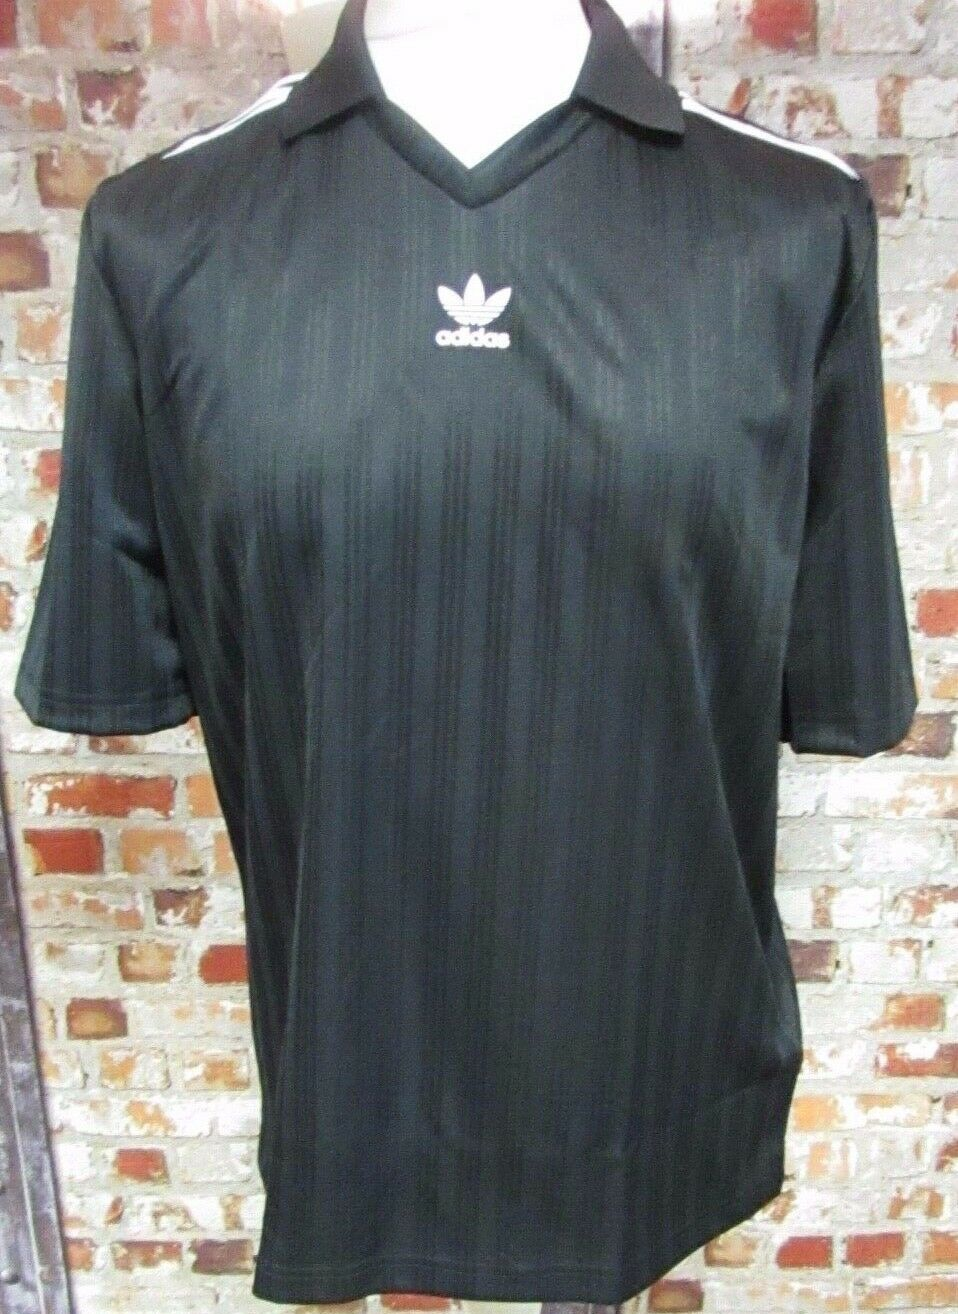 adidas Originals Football Shirt Black and White  Size Medium